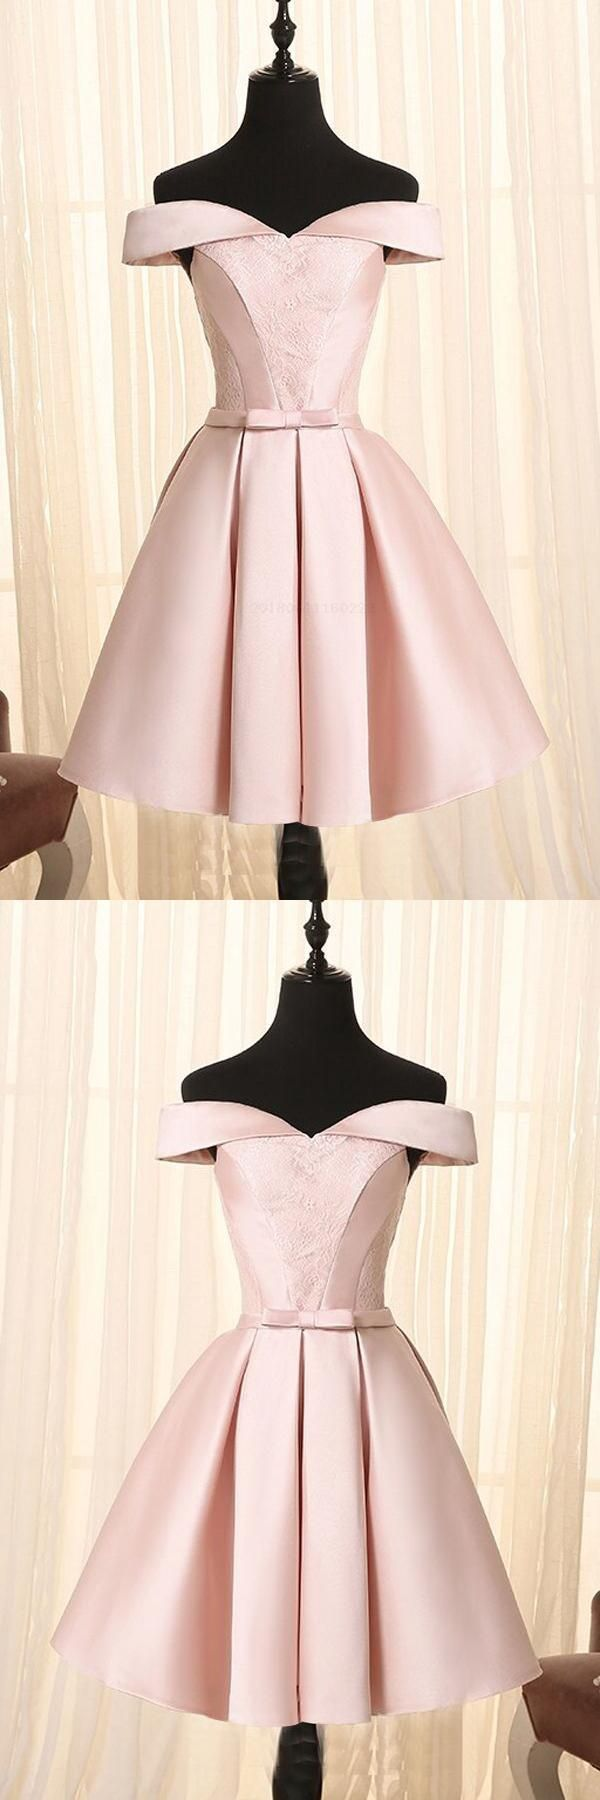 Hot sale appealing simple lace aline pink short homecoming